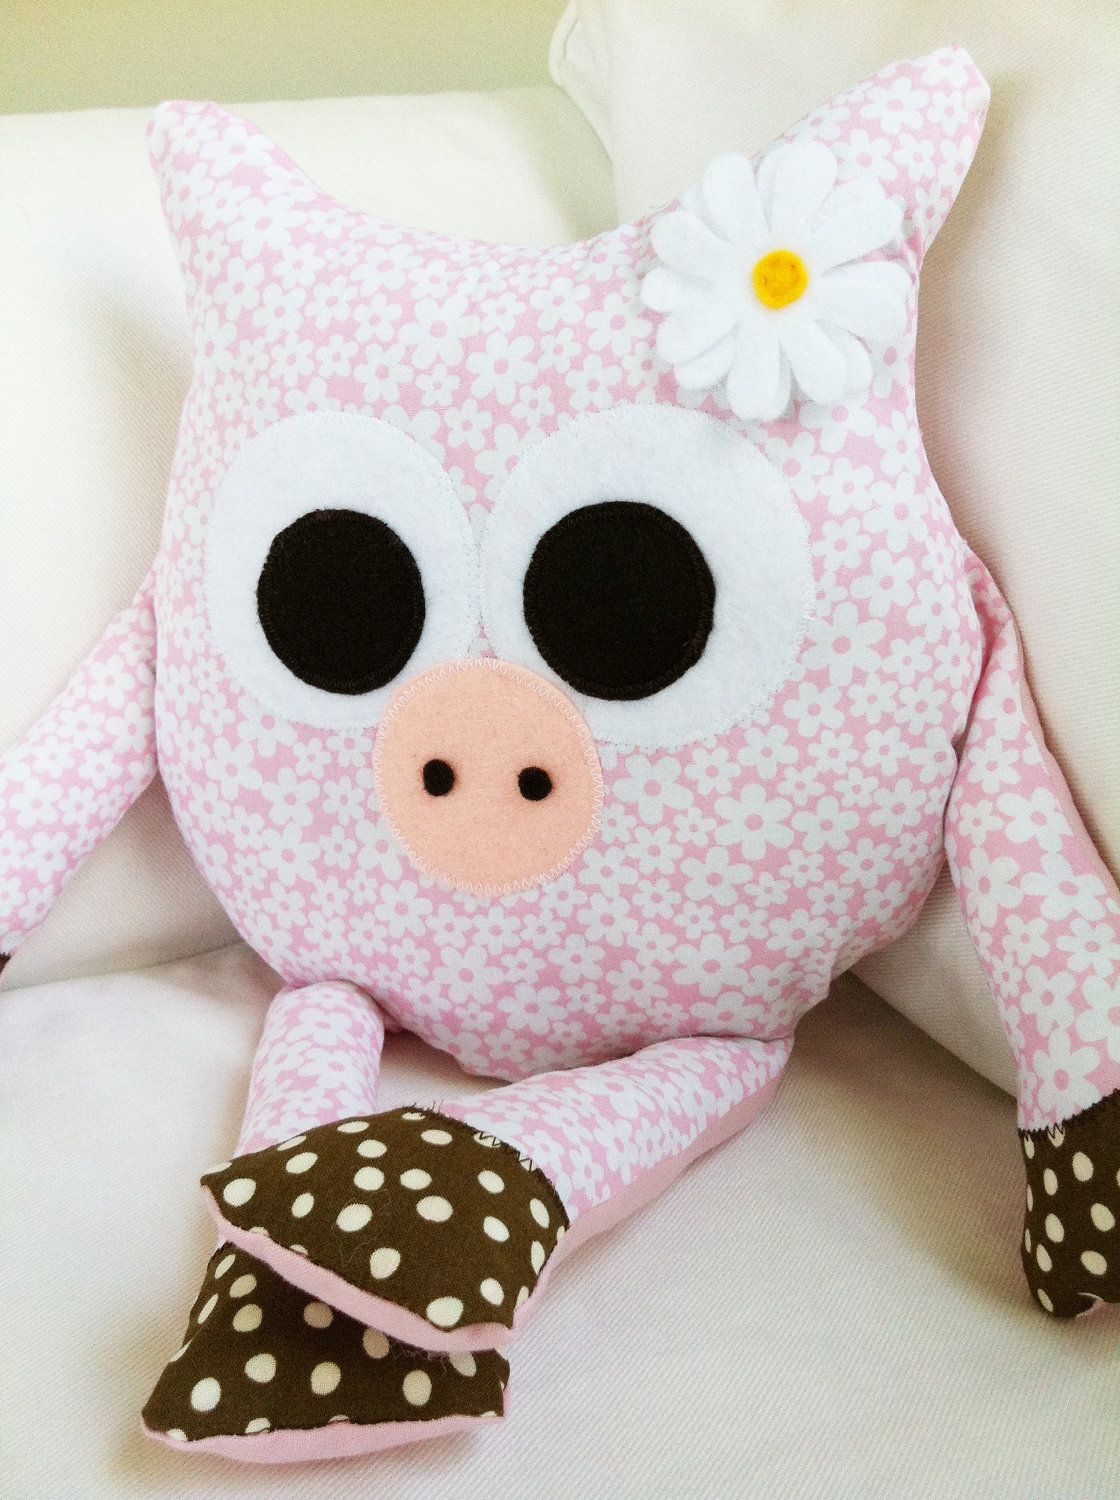 Toy sewing pattern pig pillow pdf by gandgpatterns on etsy 900 toy sewing pattern pig pillow pdf by gandgpatterns on etsy 900 jeuxipadfo Image collections